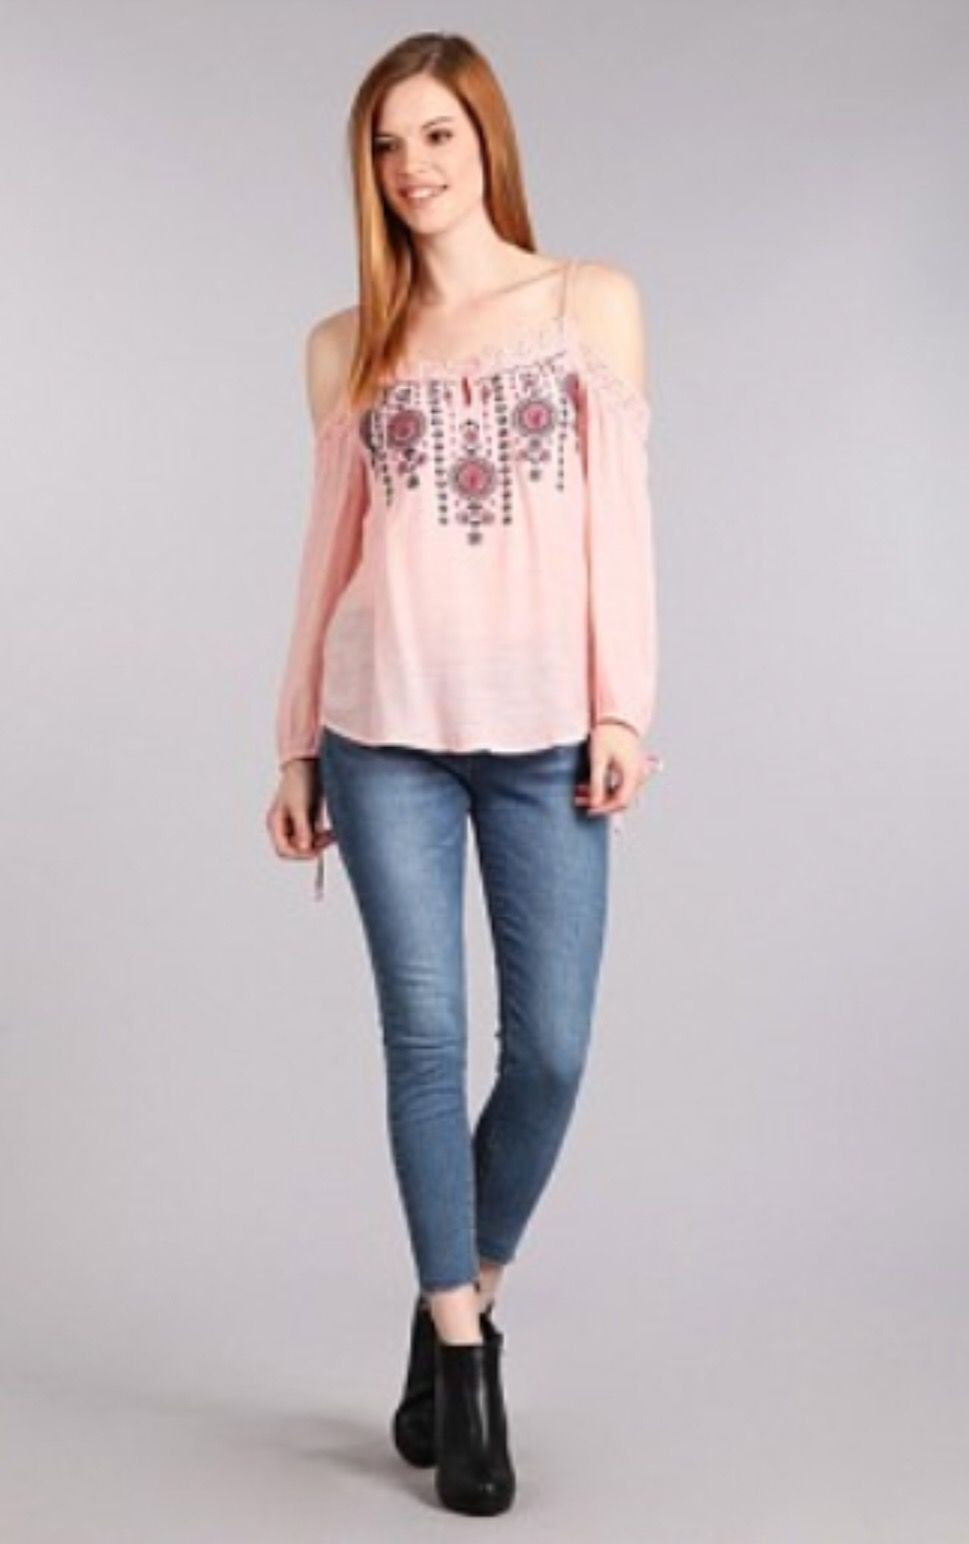 ac58d52e8db919 IRELAND EMBROIDERED COLD-SHOULDER LACE TOP